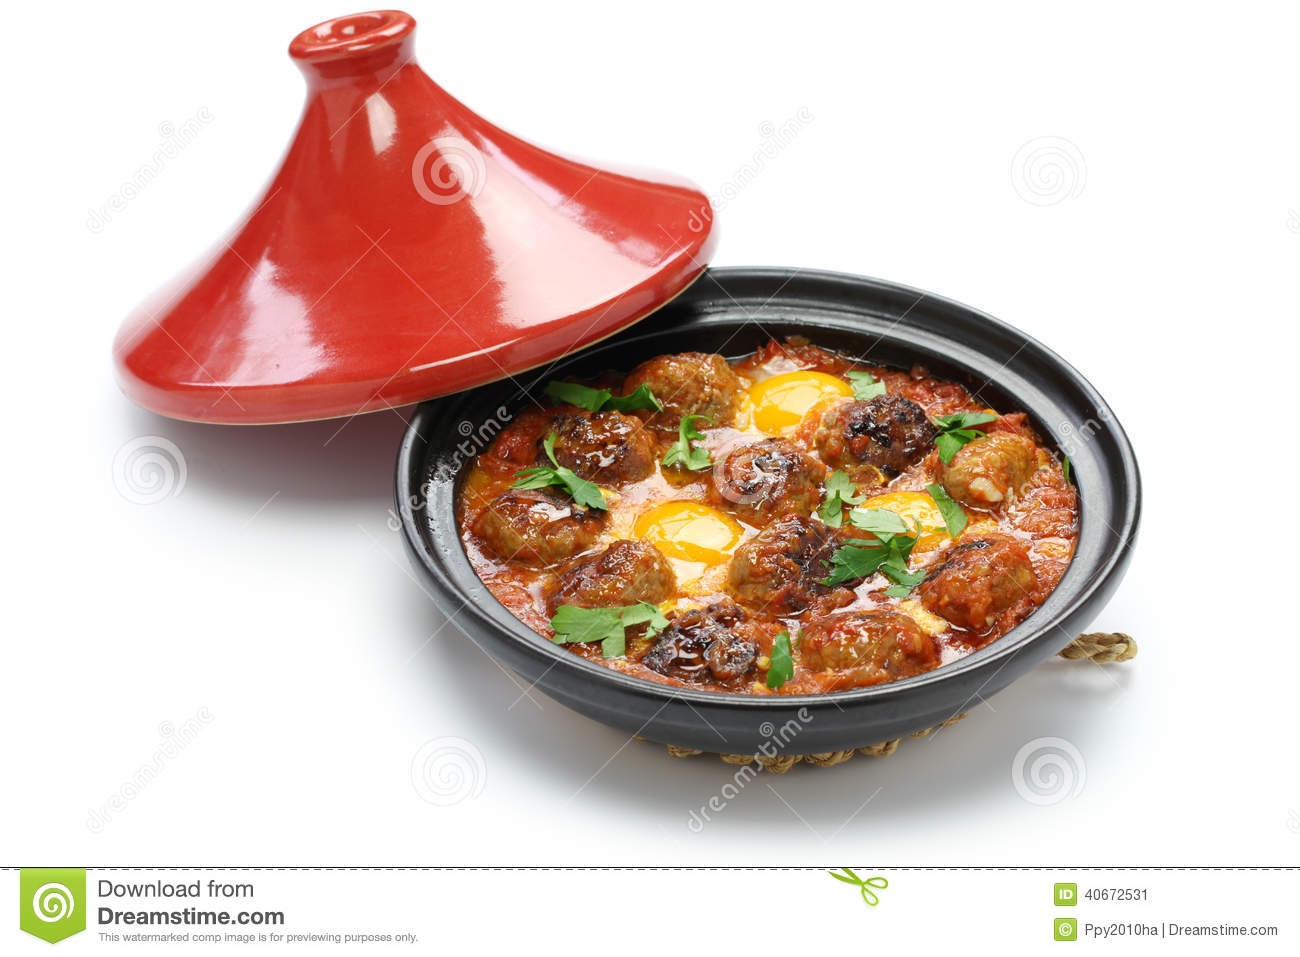 tajine de kofta tagine de kefta cuisine marocaine photo stock image 40672531. Black Bedroom Furniture Sets. Home Design Ideas